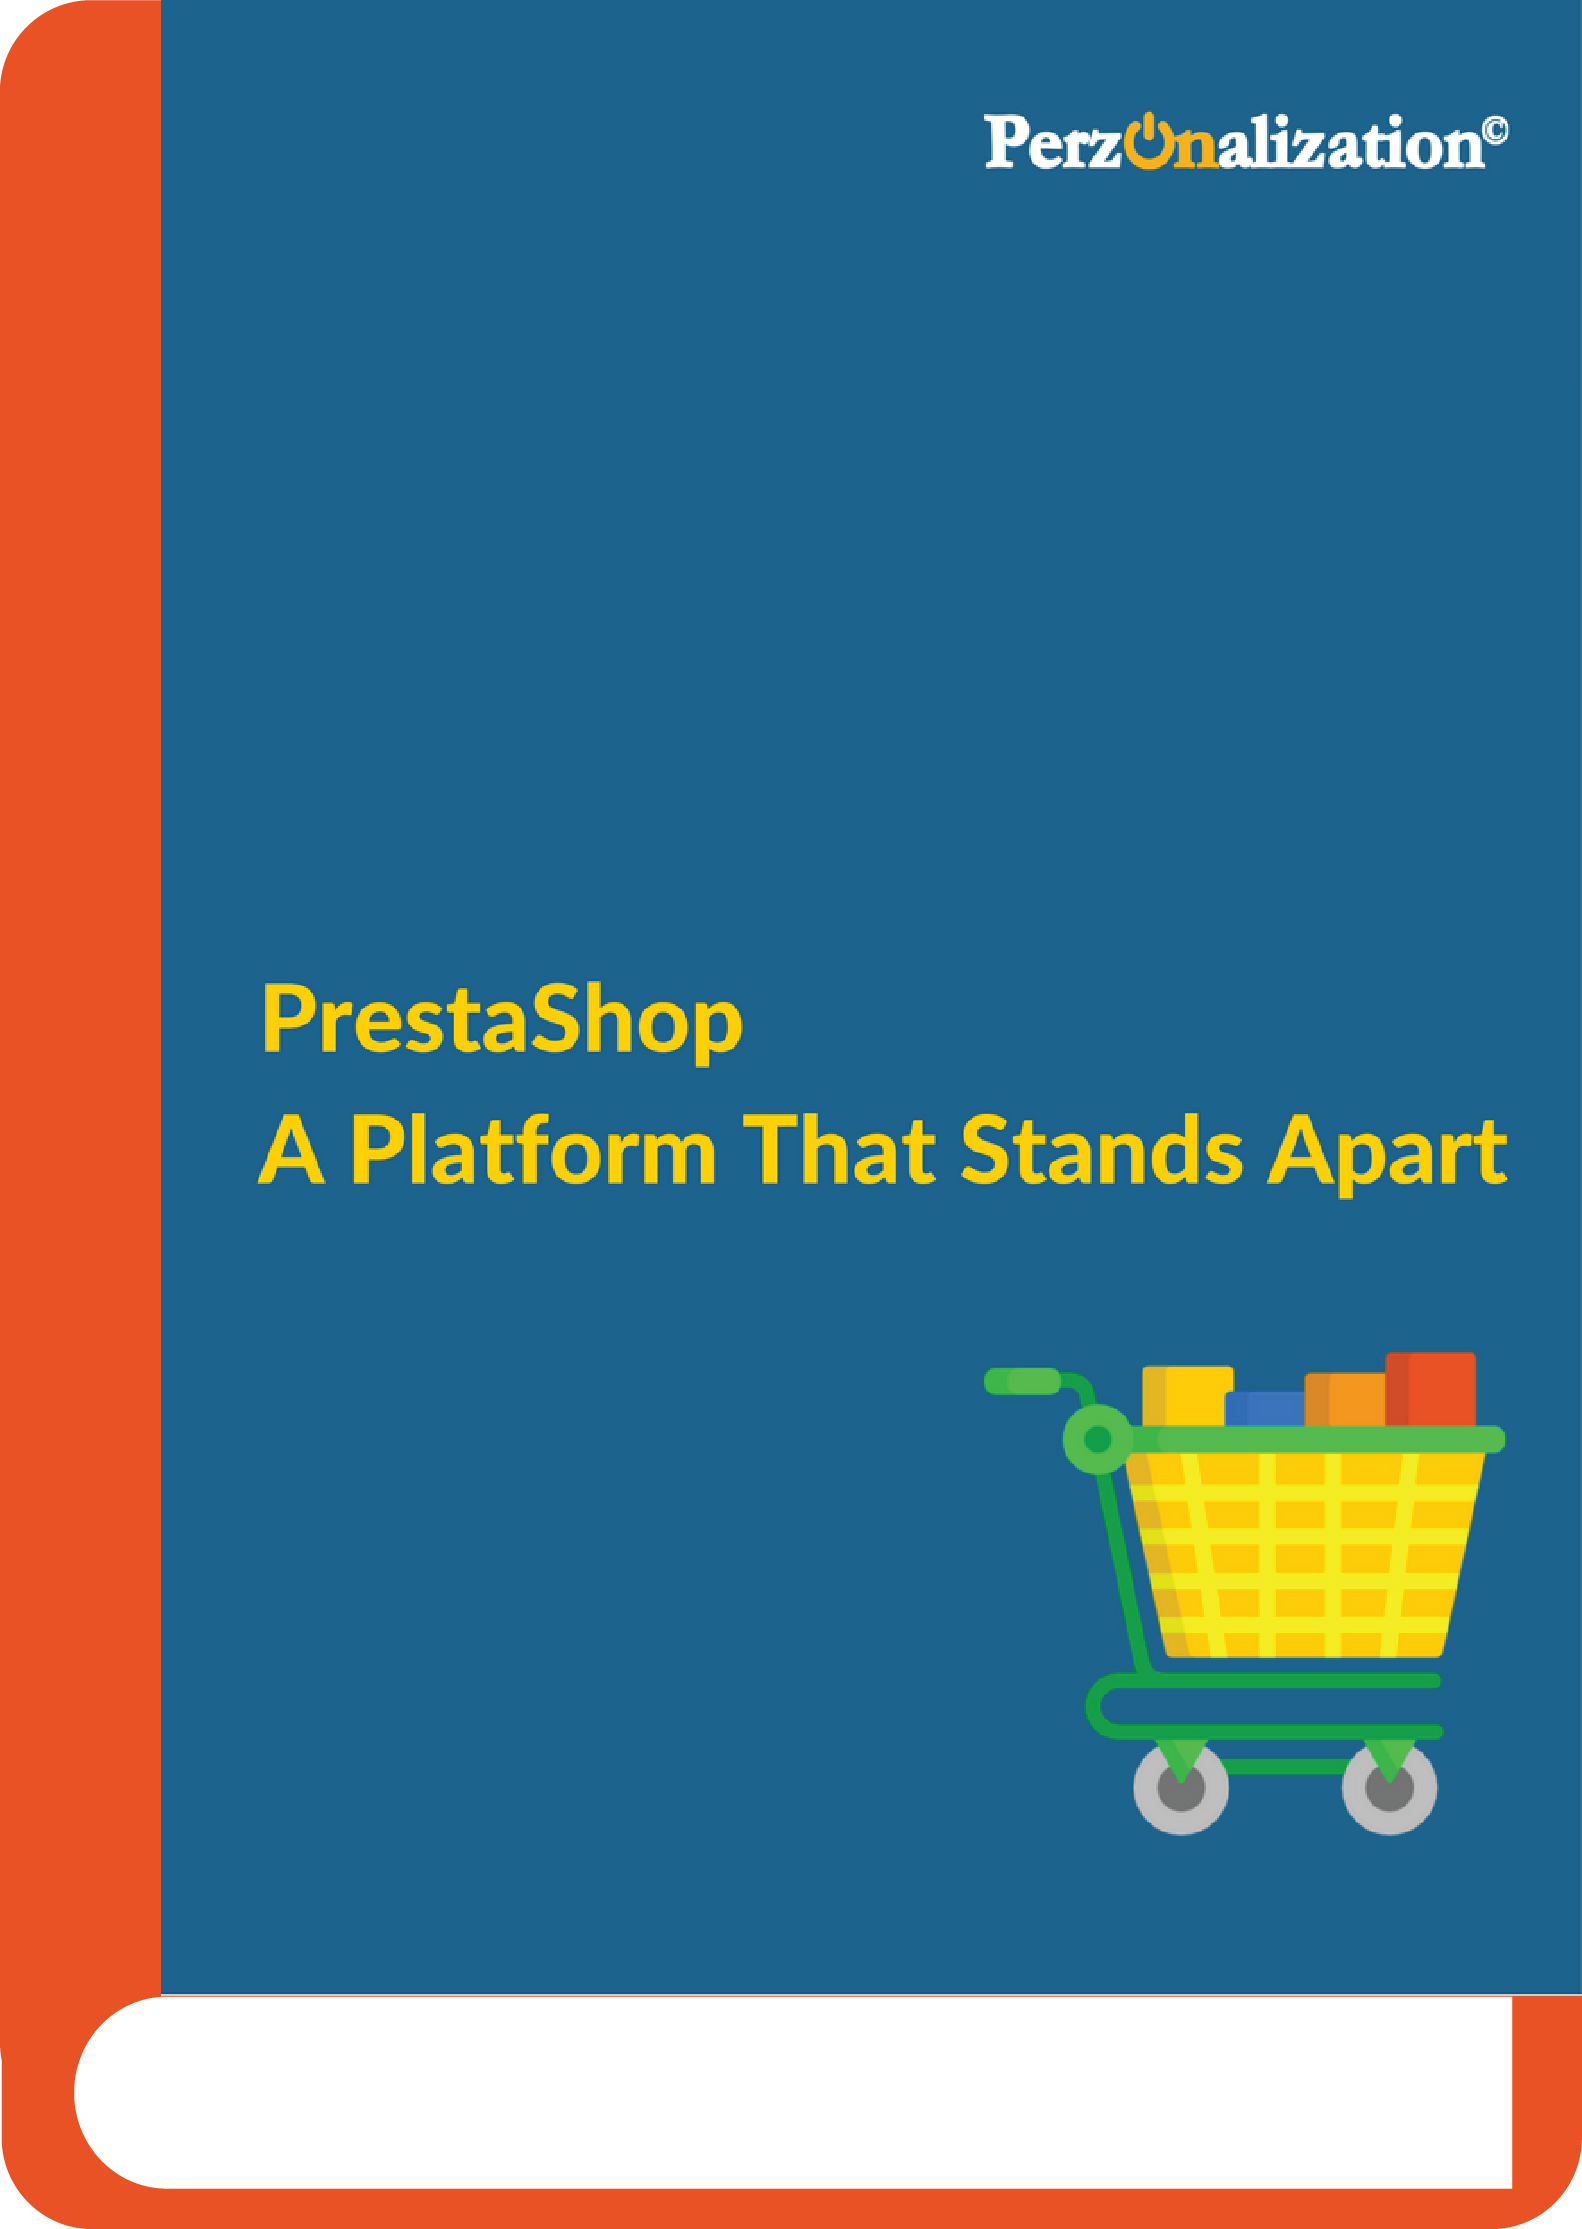 Trying to decide which eCommerce platform to choose? Learn about the popular eCommerce platform PrestaShop and its modules in this free eBook.